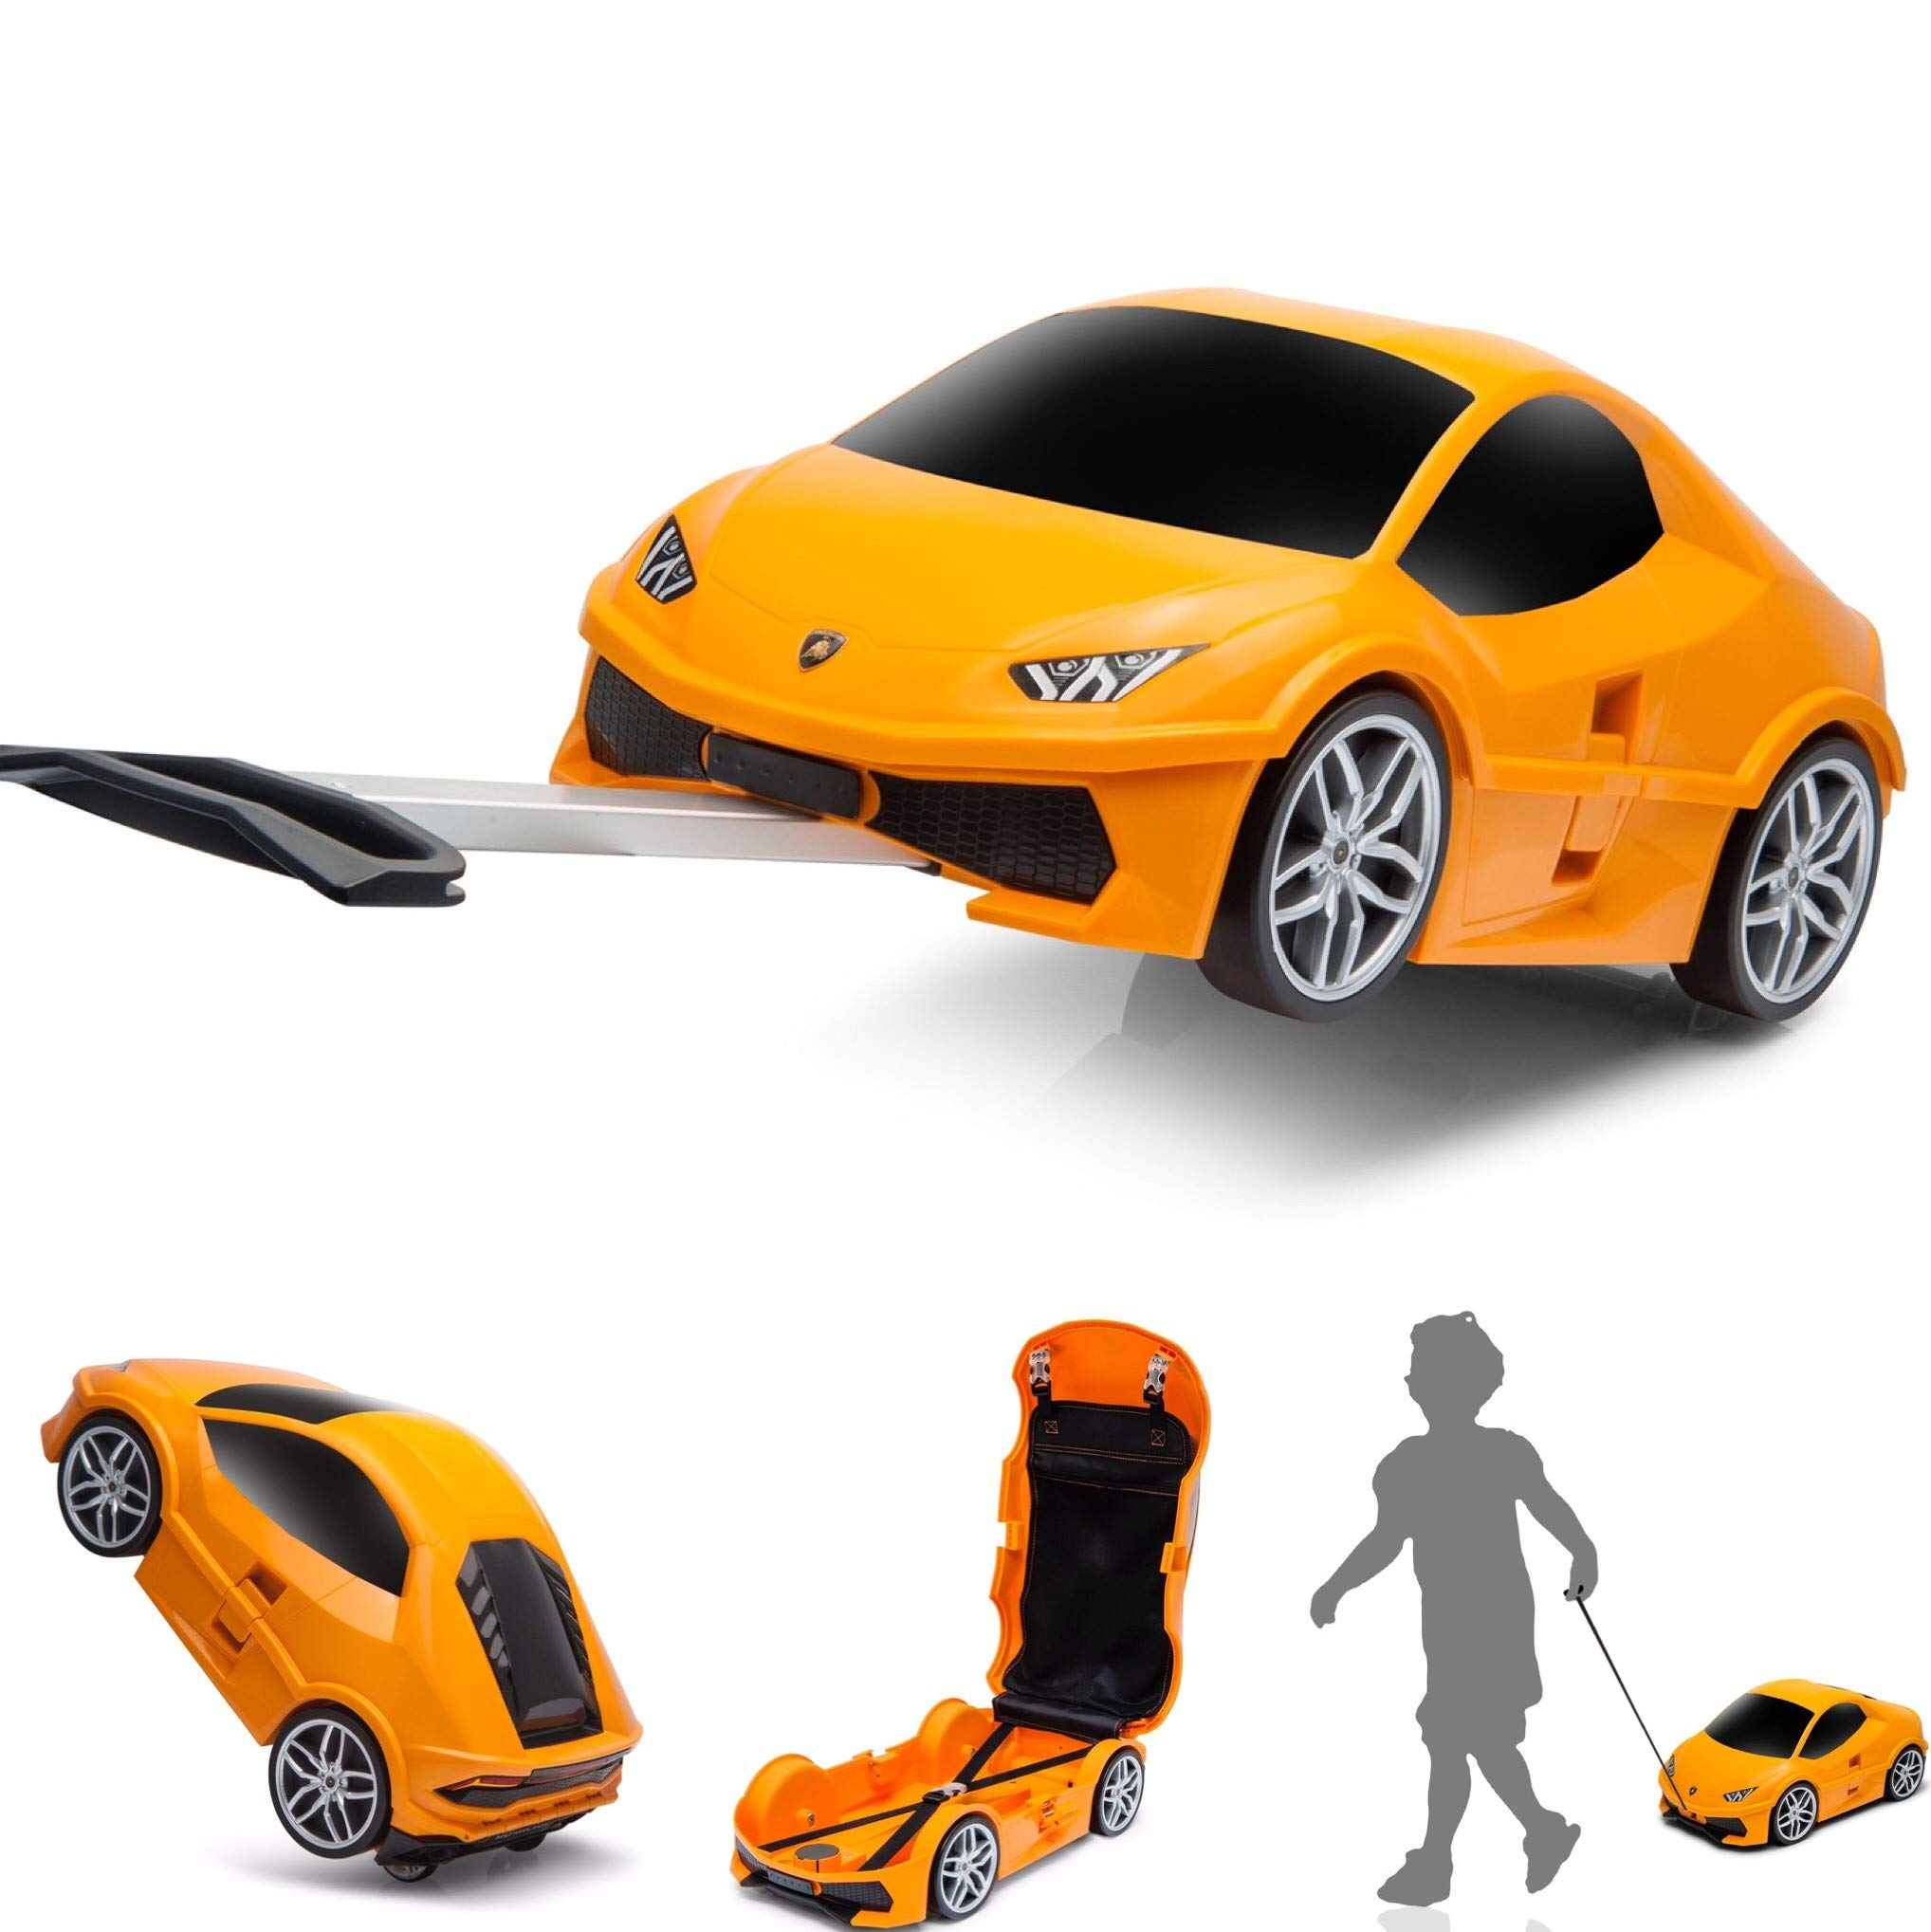 Ridaz Lamborghini Huracan Carry-on Hand Luggage for kids, (Officially Licensed by Lamborghini) Orange Lamborghini by Ridaz (Image #1)